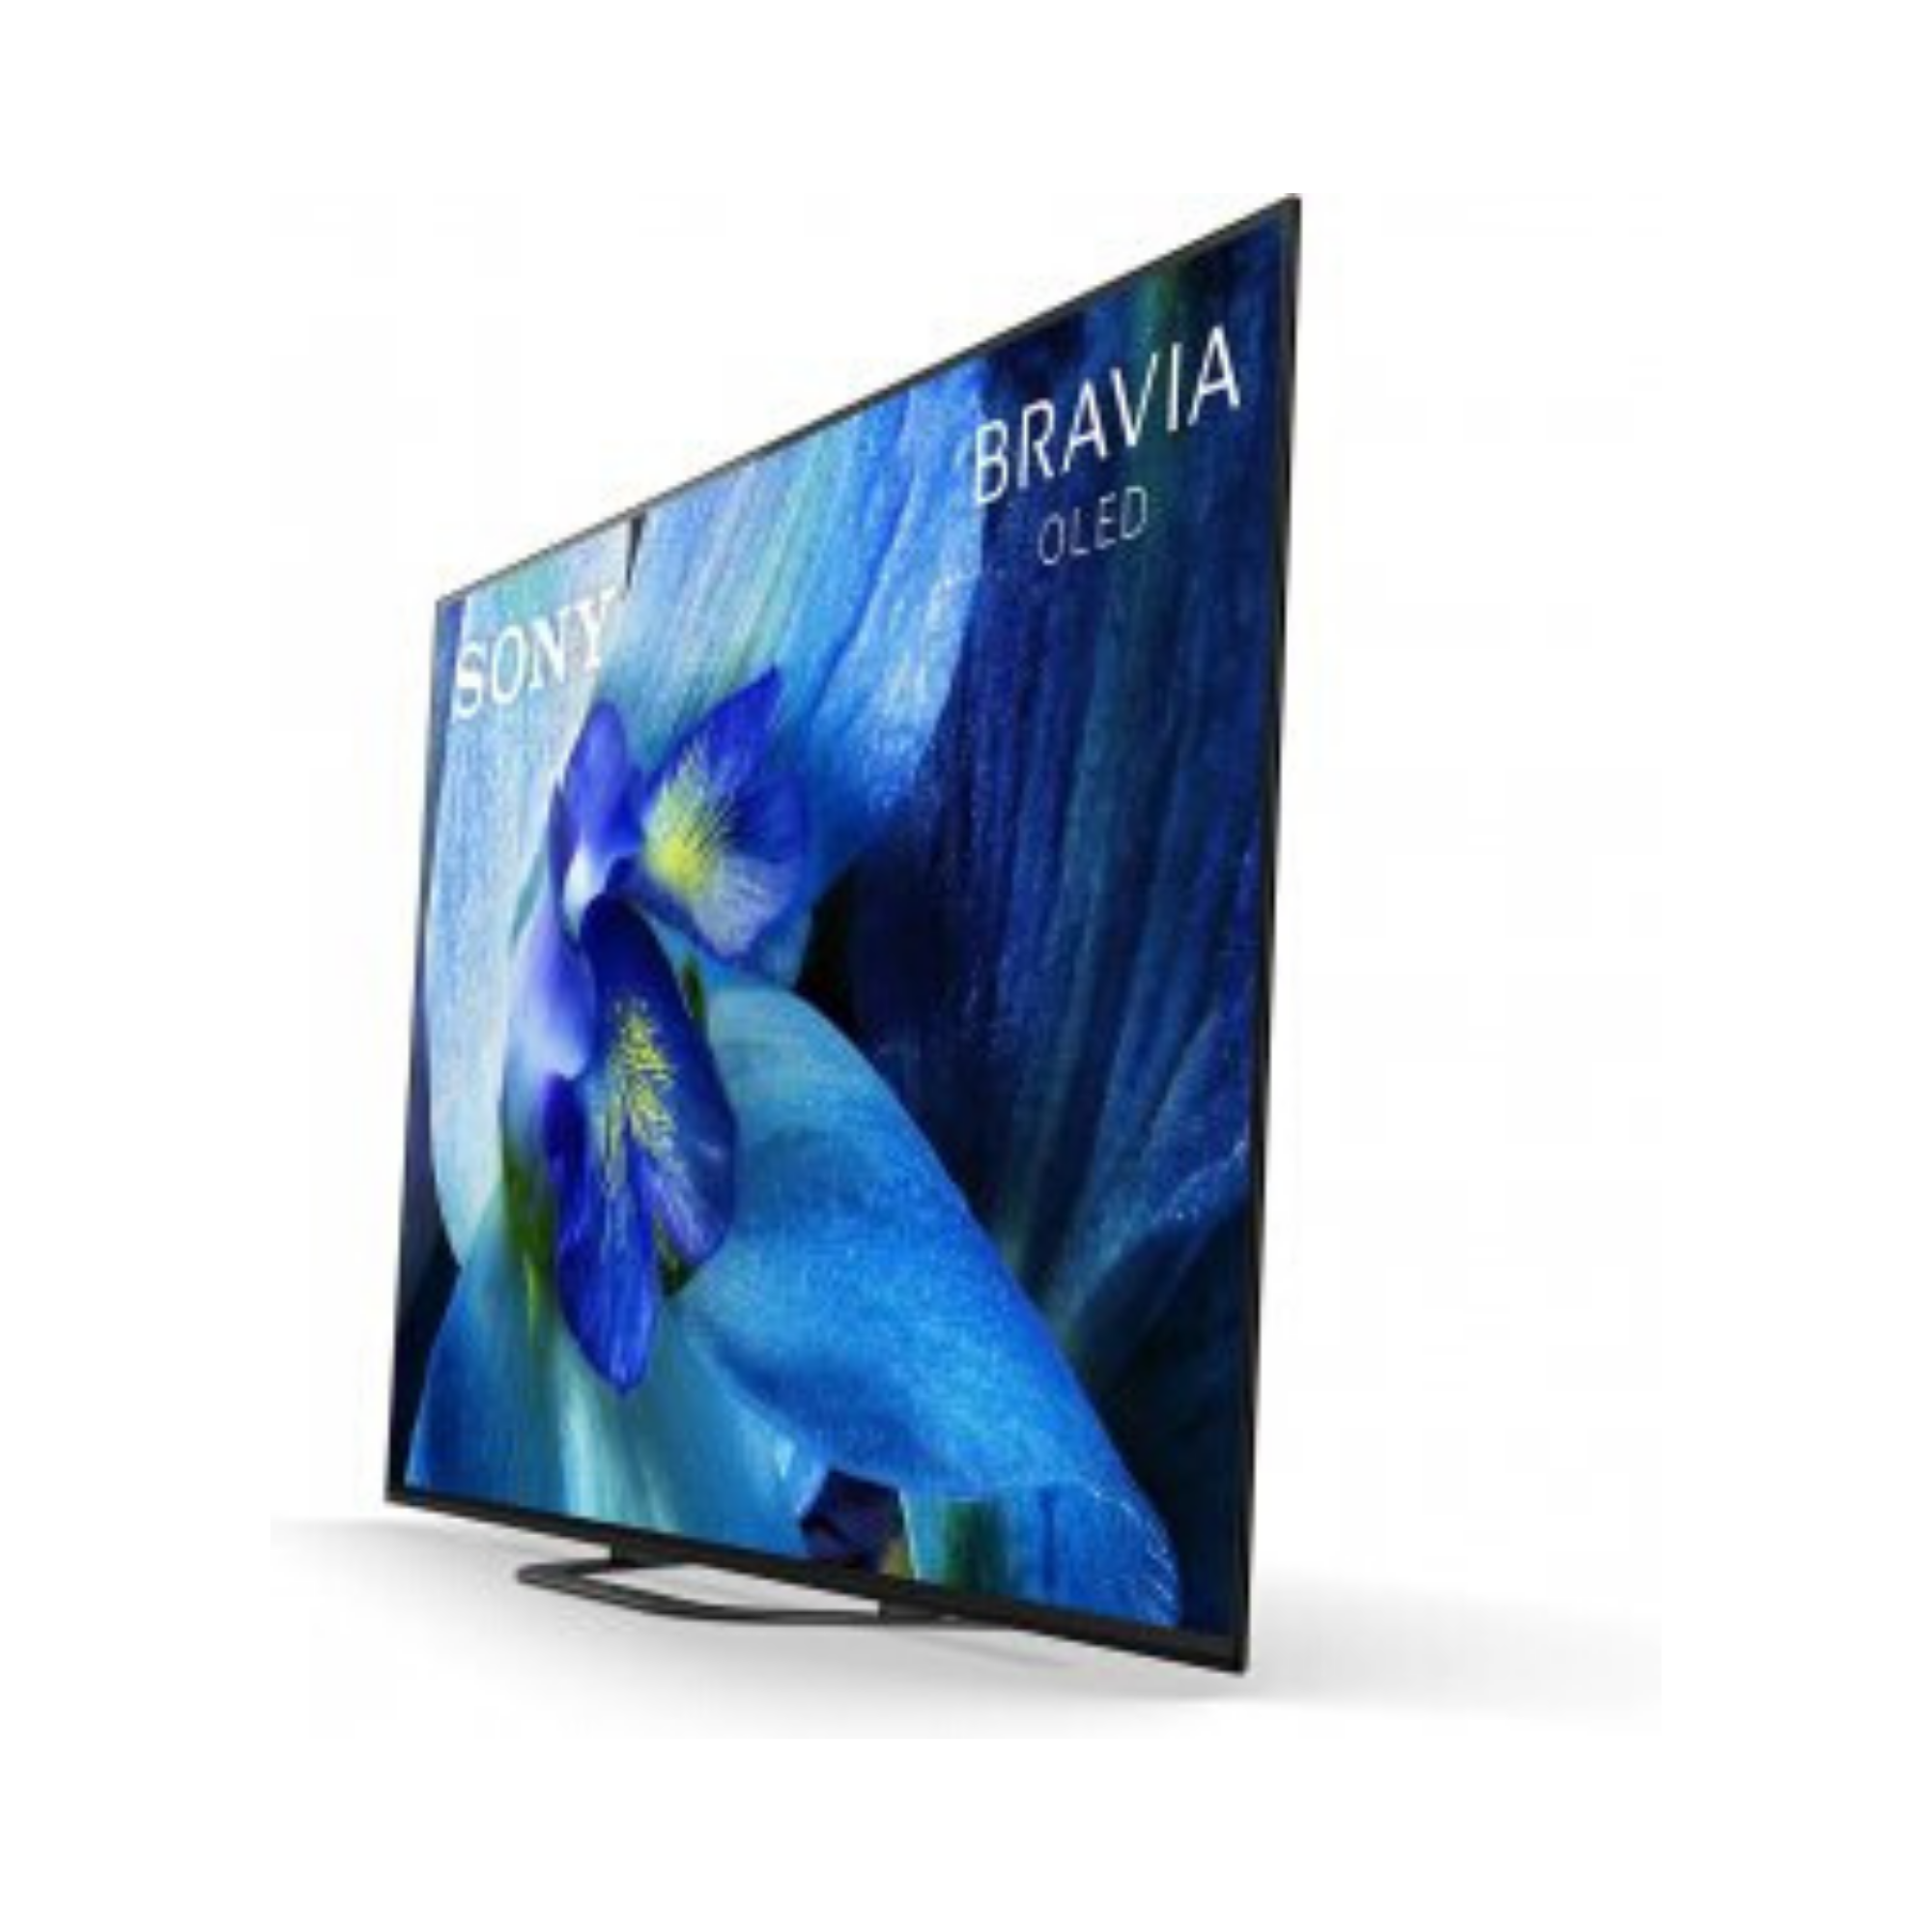 Sony XBR-55A8G 55 Inch TV: BRAVIA OLED 4K Ultra HD Smart TV HDR Alexa  ( Sony HD Smart TV )